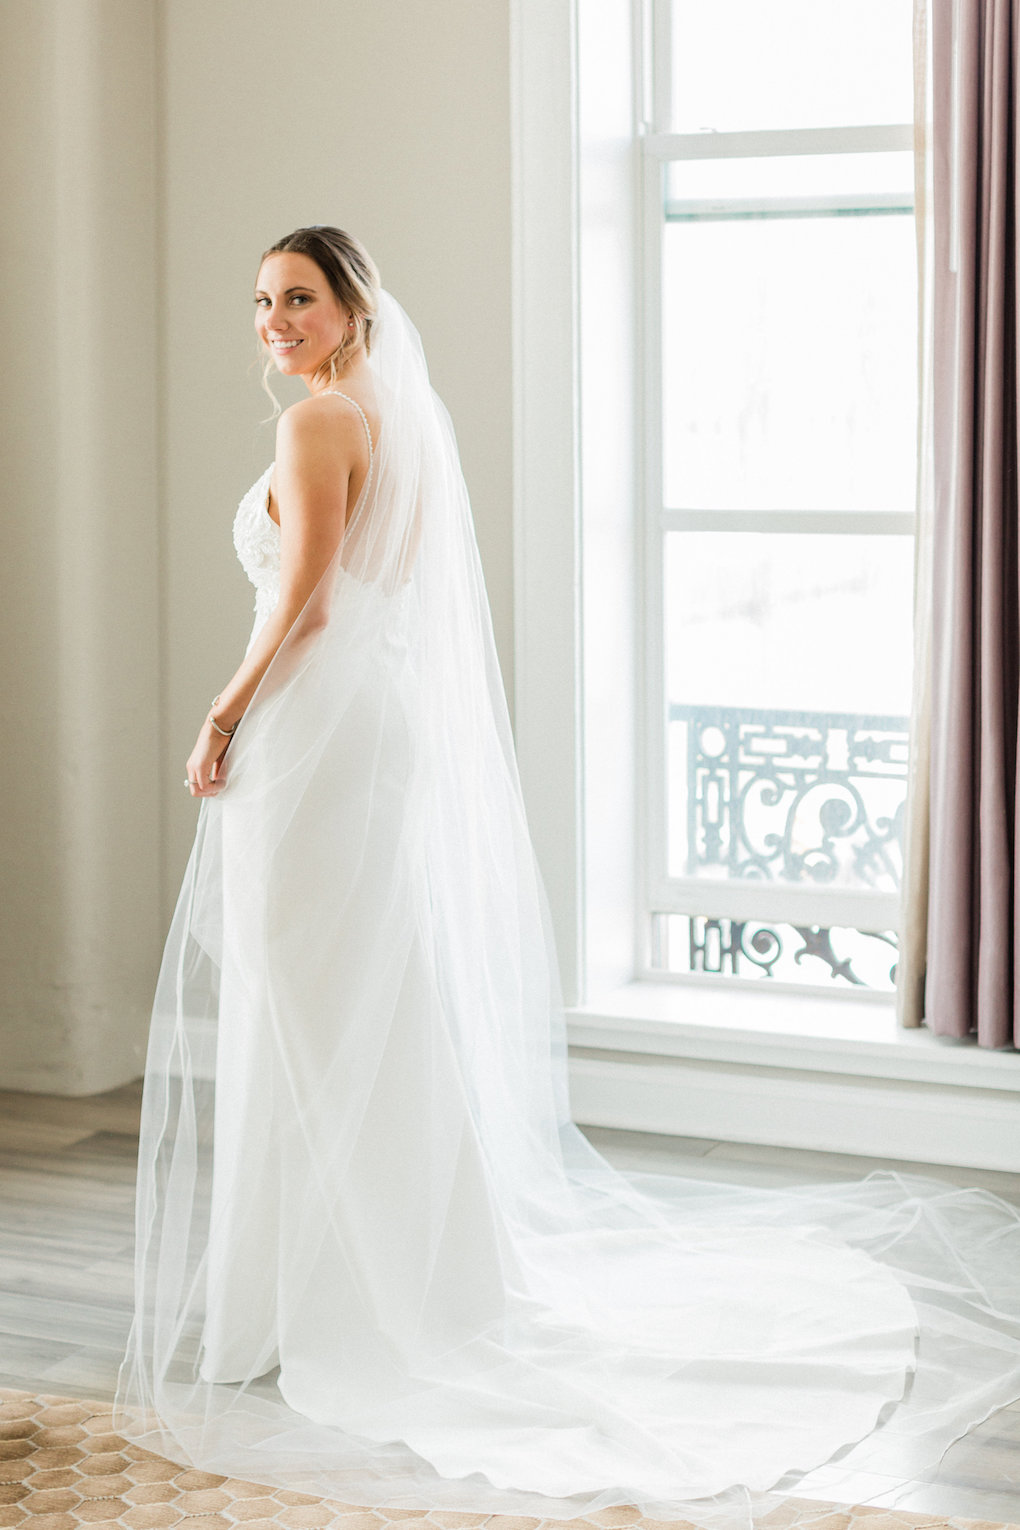 Bridal portrait for chic wedding in Buffalo, NY planned by Exhale Events. Find more timeless wedding inspiration at exhale-events.com!